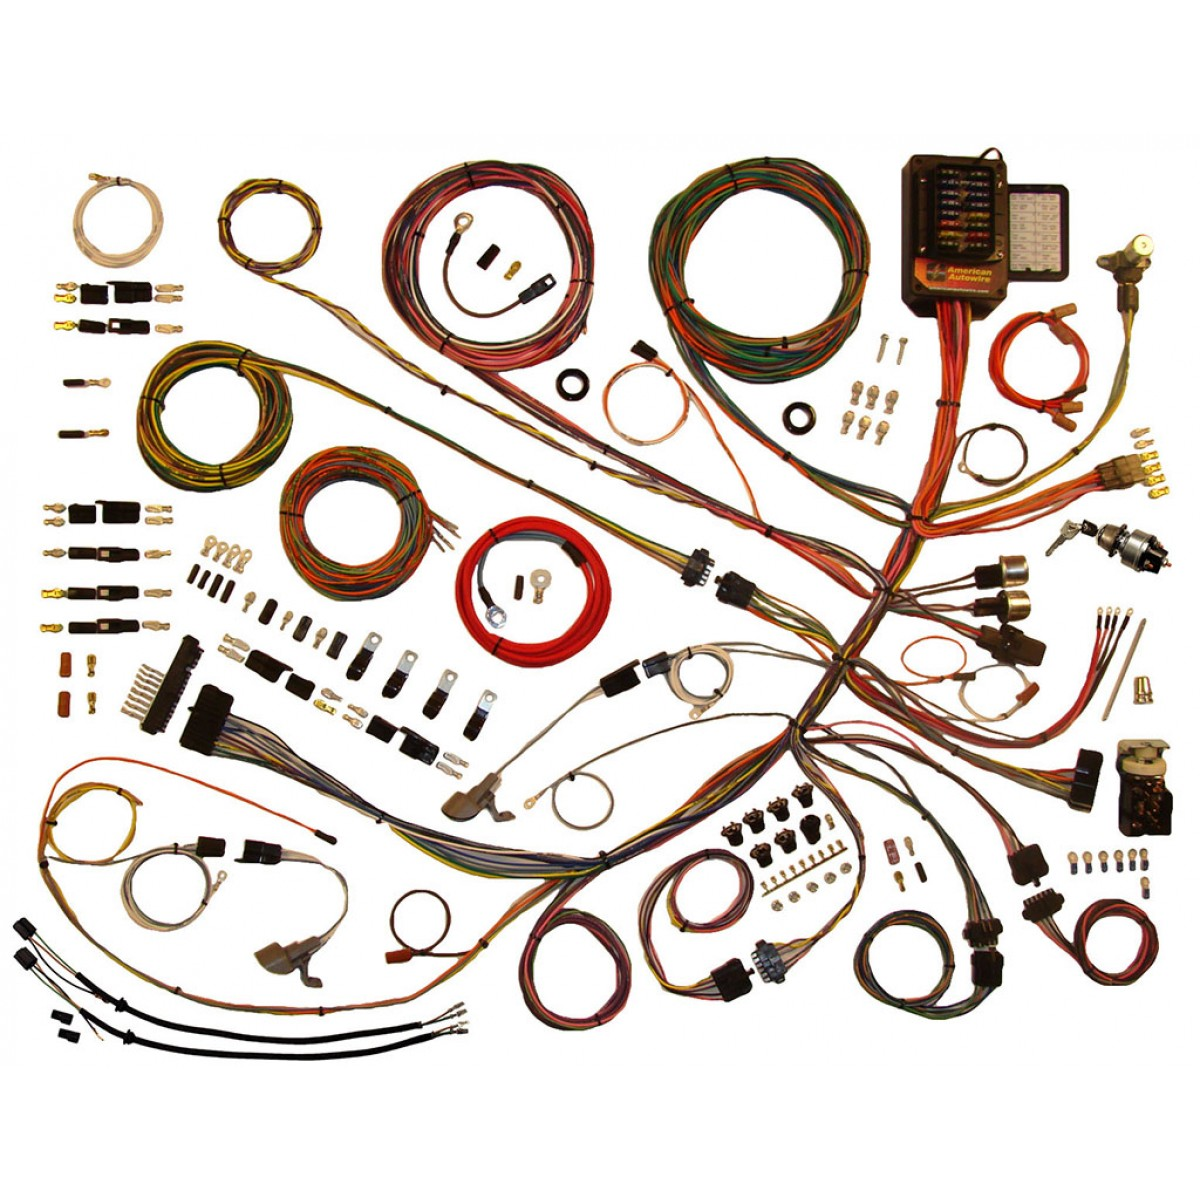 1953 1956 ford f100 wiring harness complete wiring harness kit 1953 1956 ford f100 part